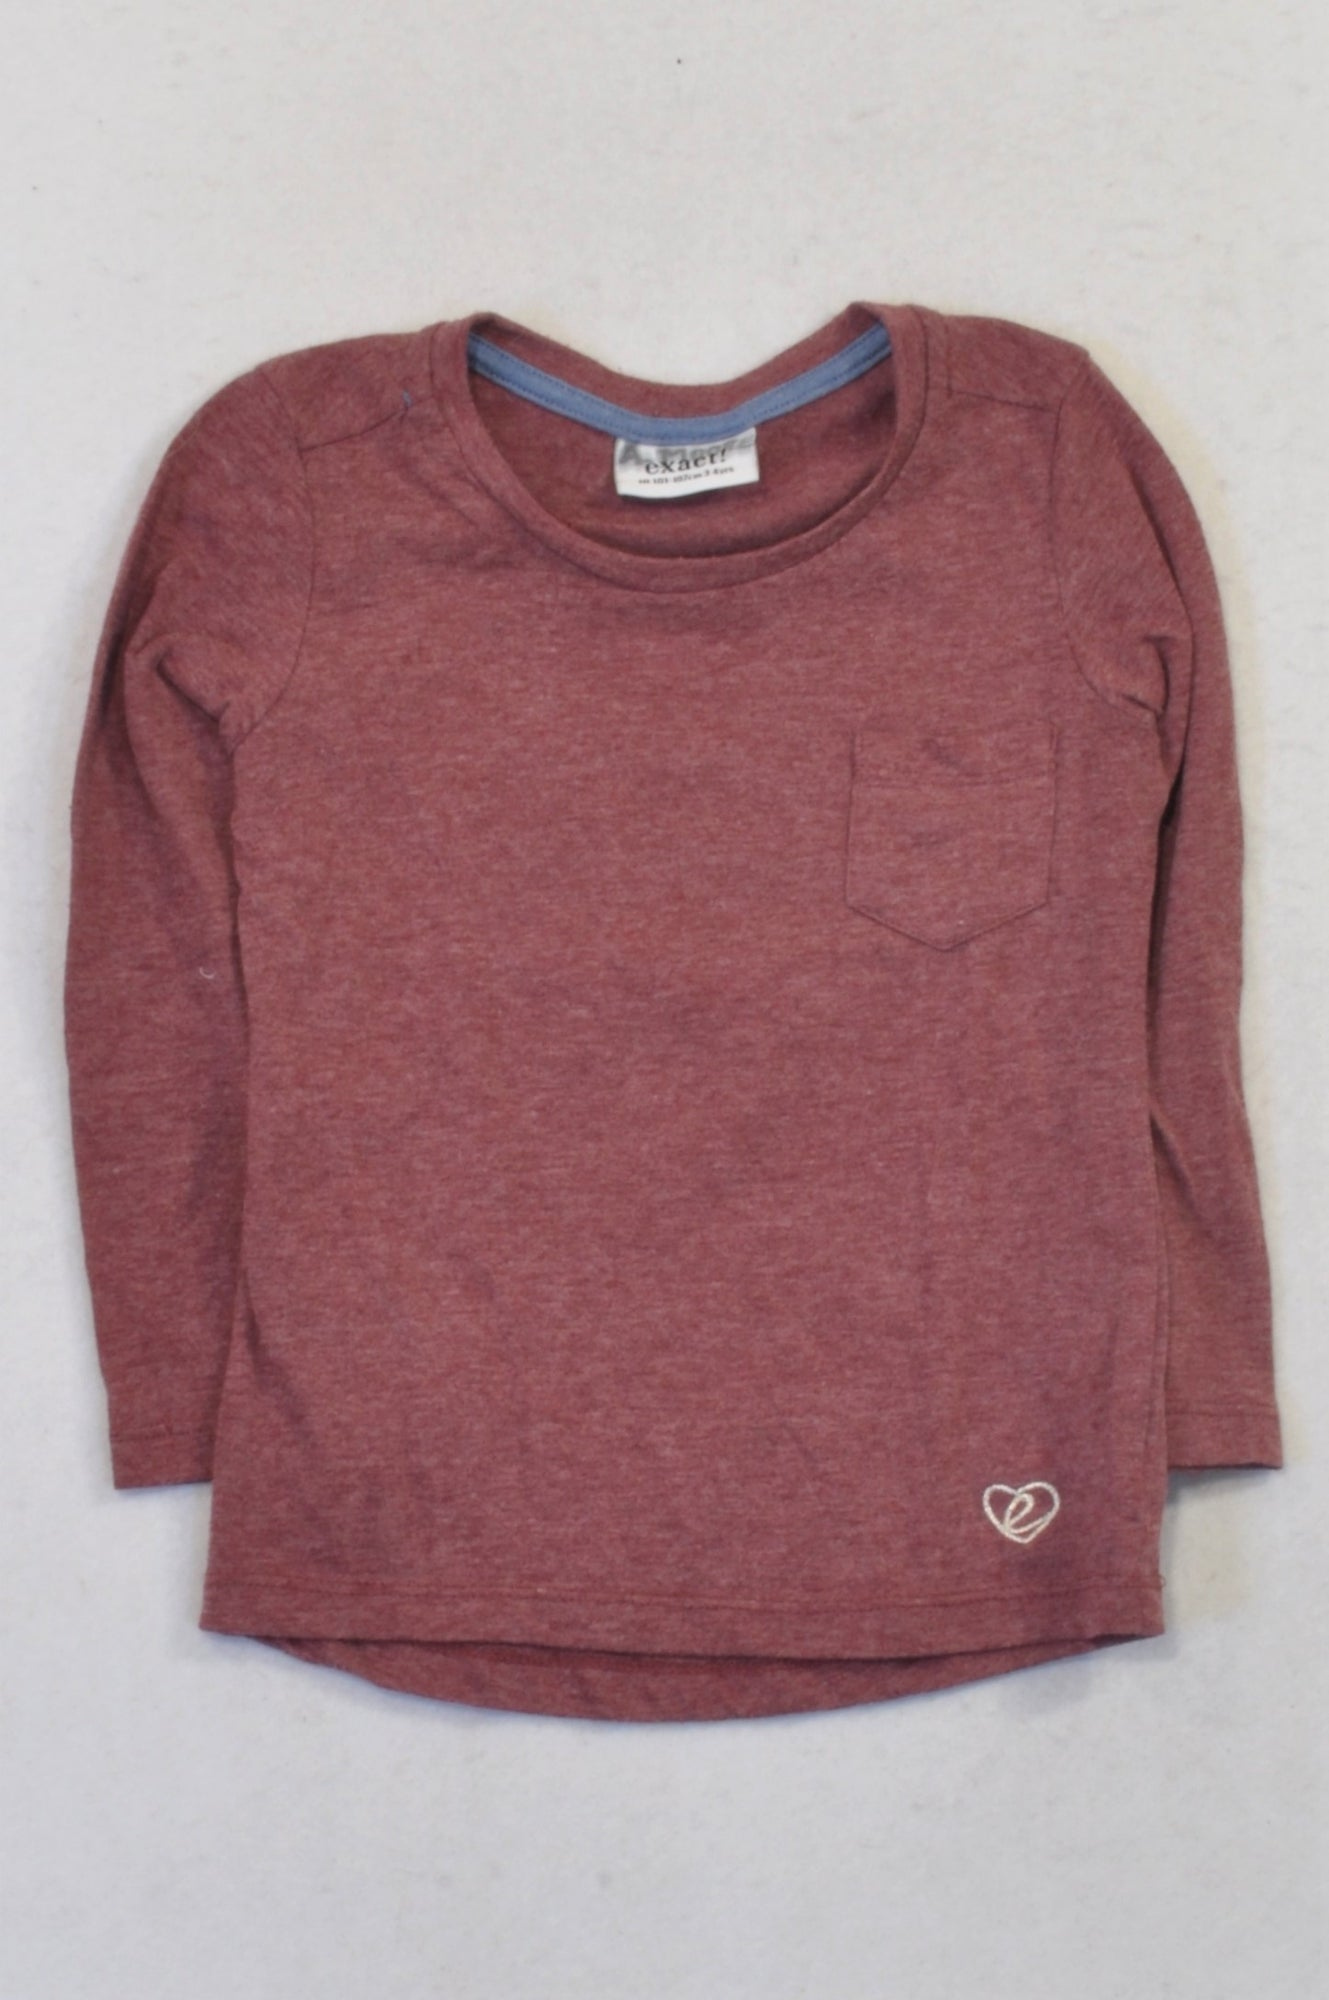 Exact Burgundy Heathered T-shirt Girls 3-4 years